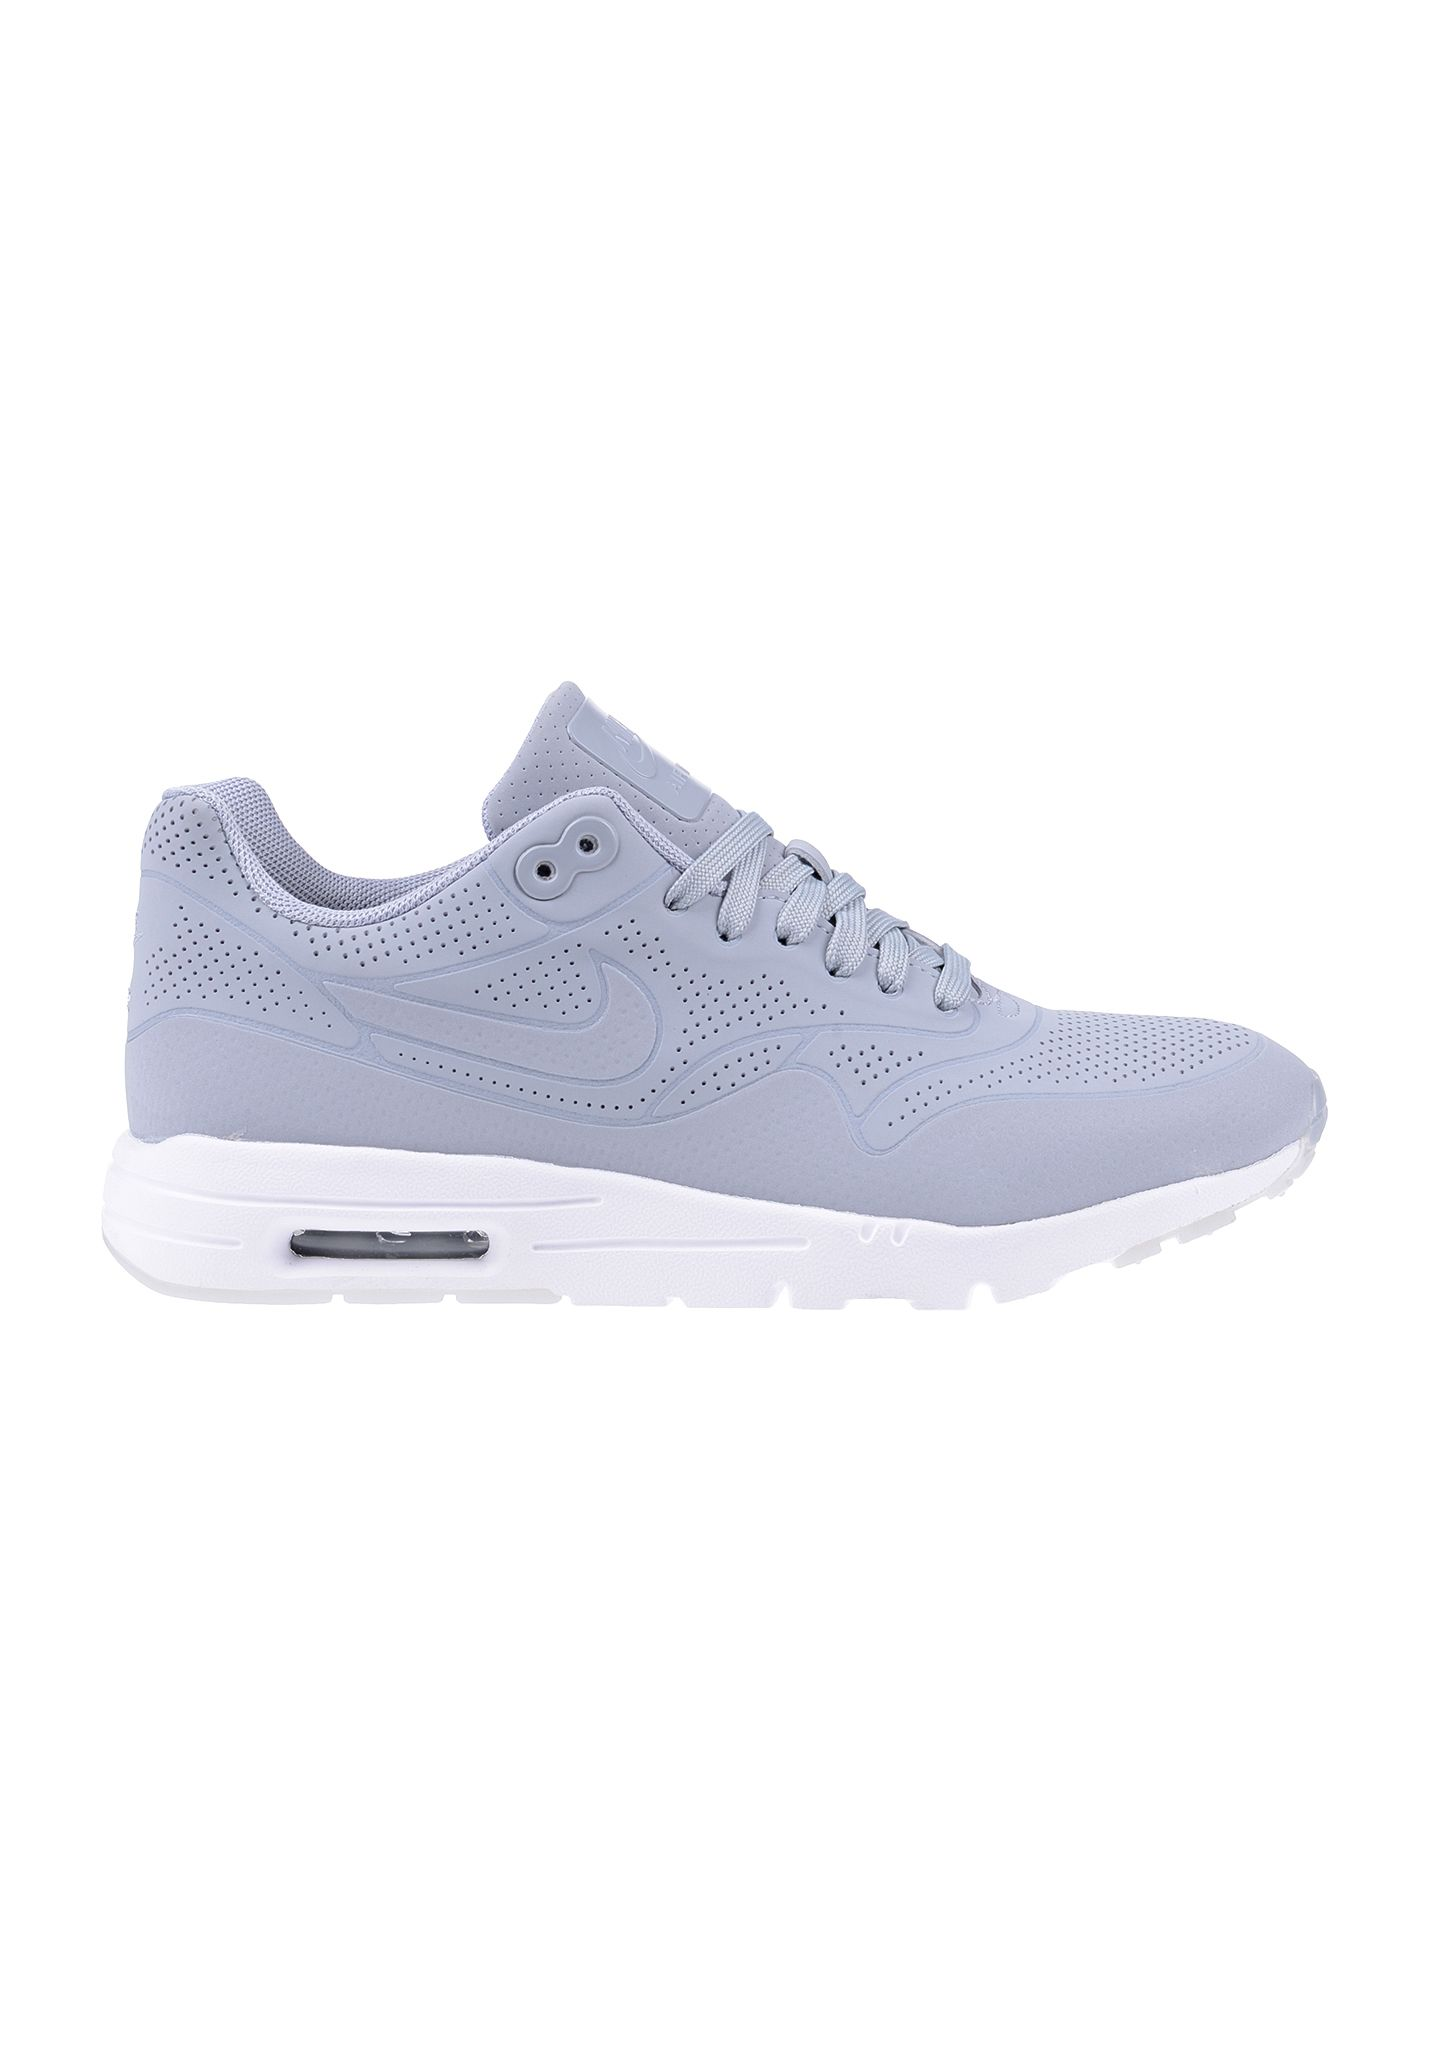 innovative design 8e06b 06047 NIKE SPORTSWEAR Air Max 1 Ultra Moire - Sneakers for Women - Grey - Planet  Sports